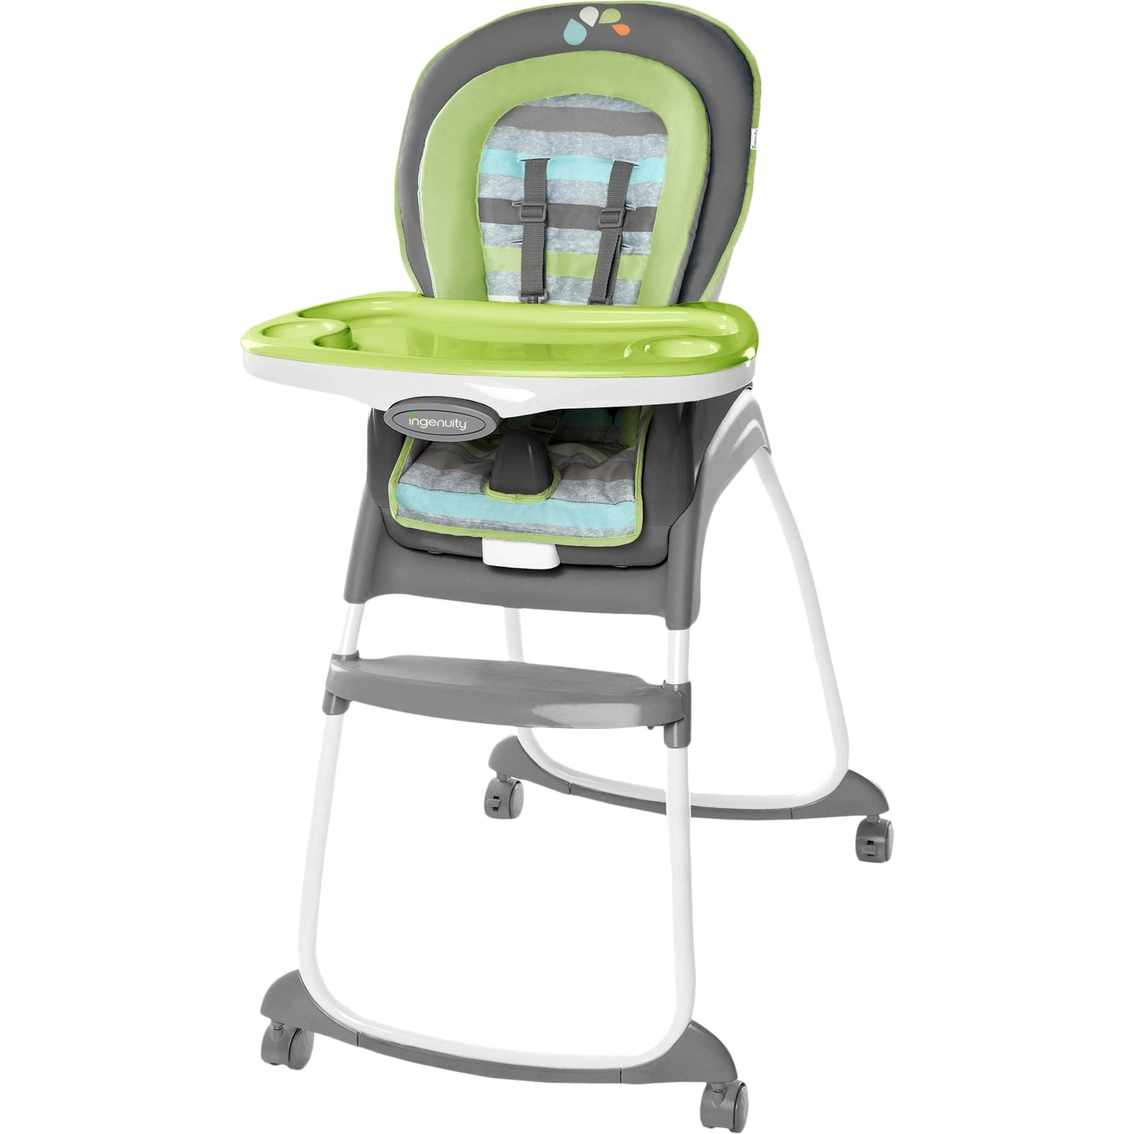 woods baby replacement sit n highchair roll shower ingenuity disney pooh relax high chair lovely of cover spring the buddy in